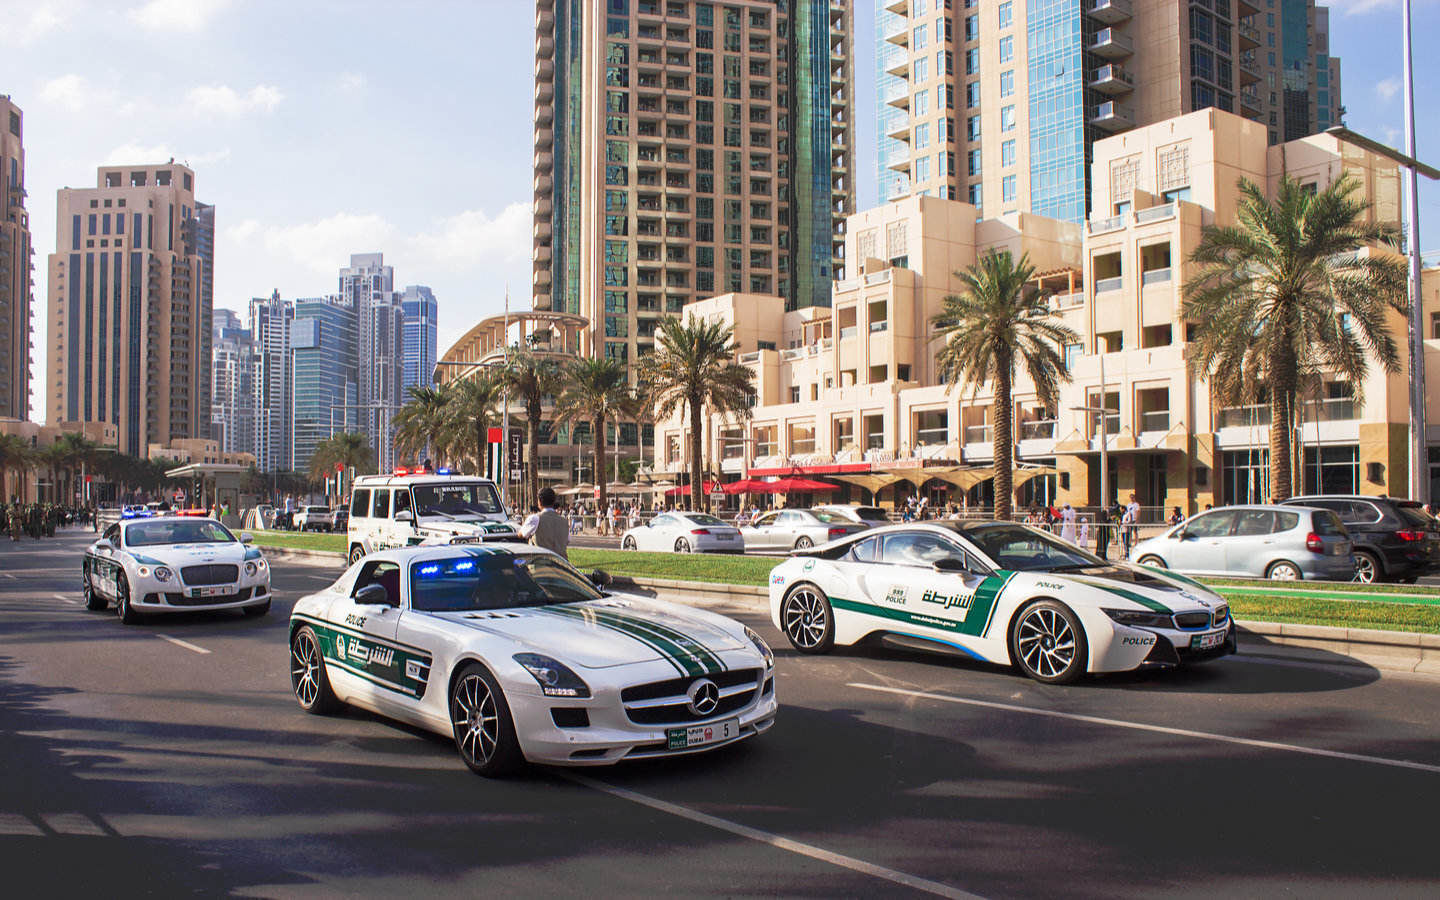 Dubai Police holding events in Dubai in December